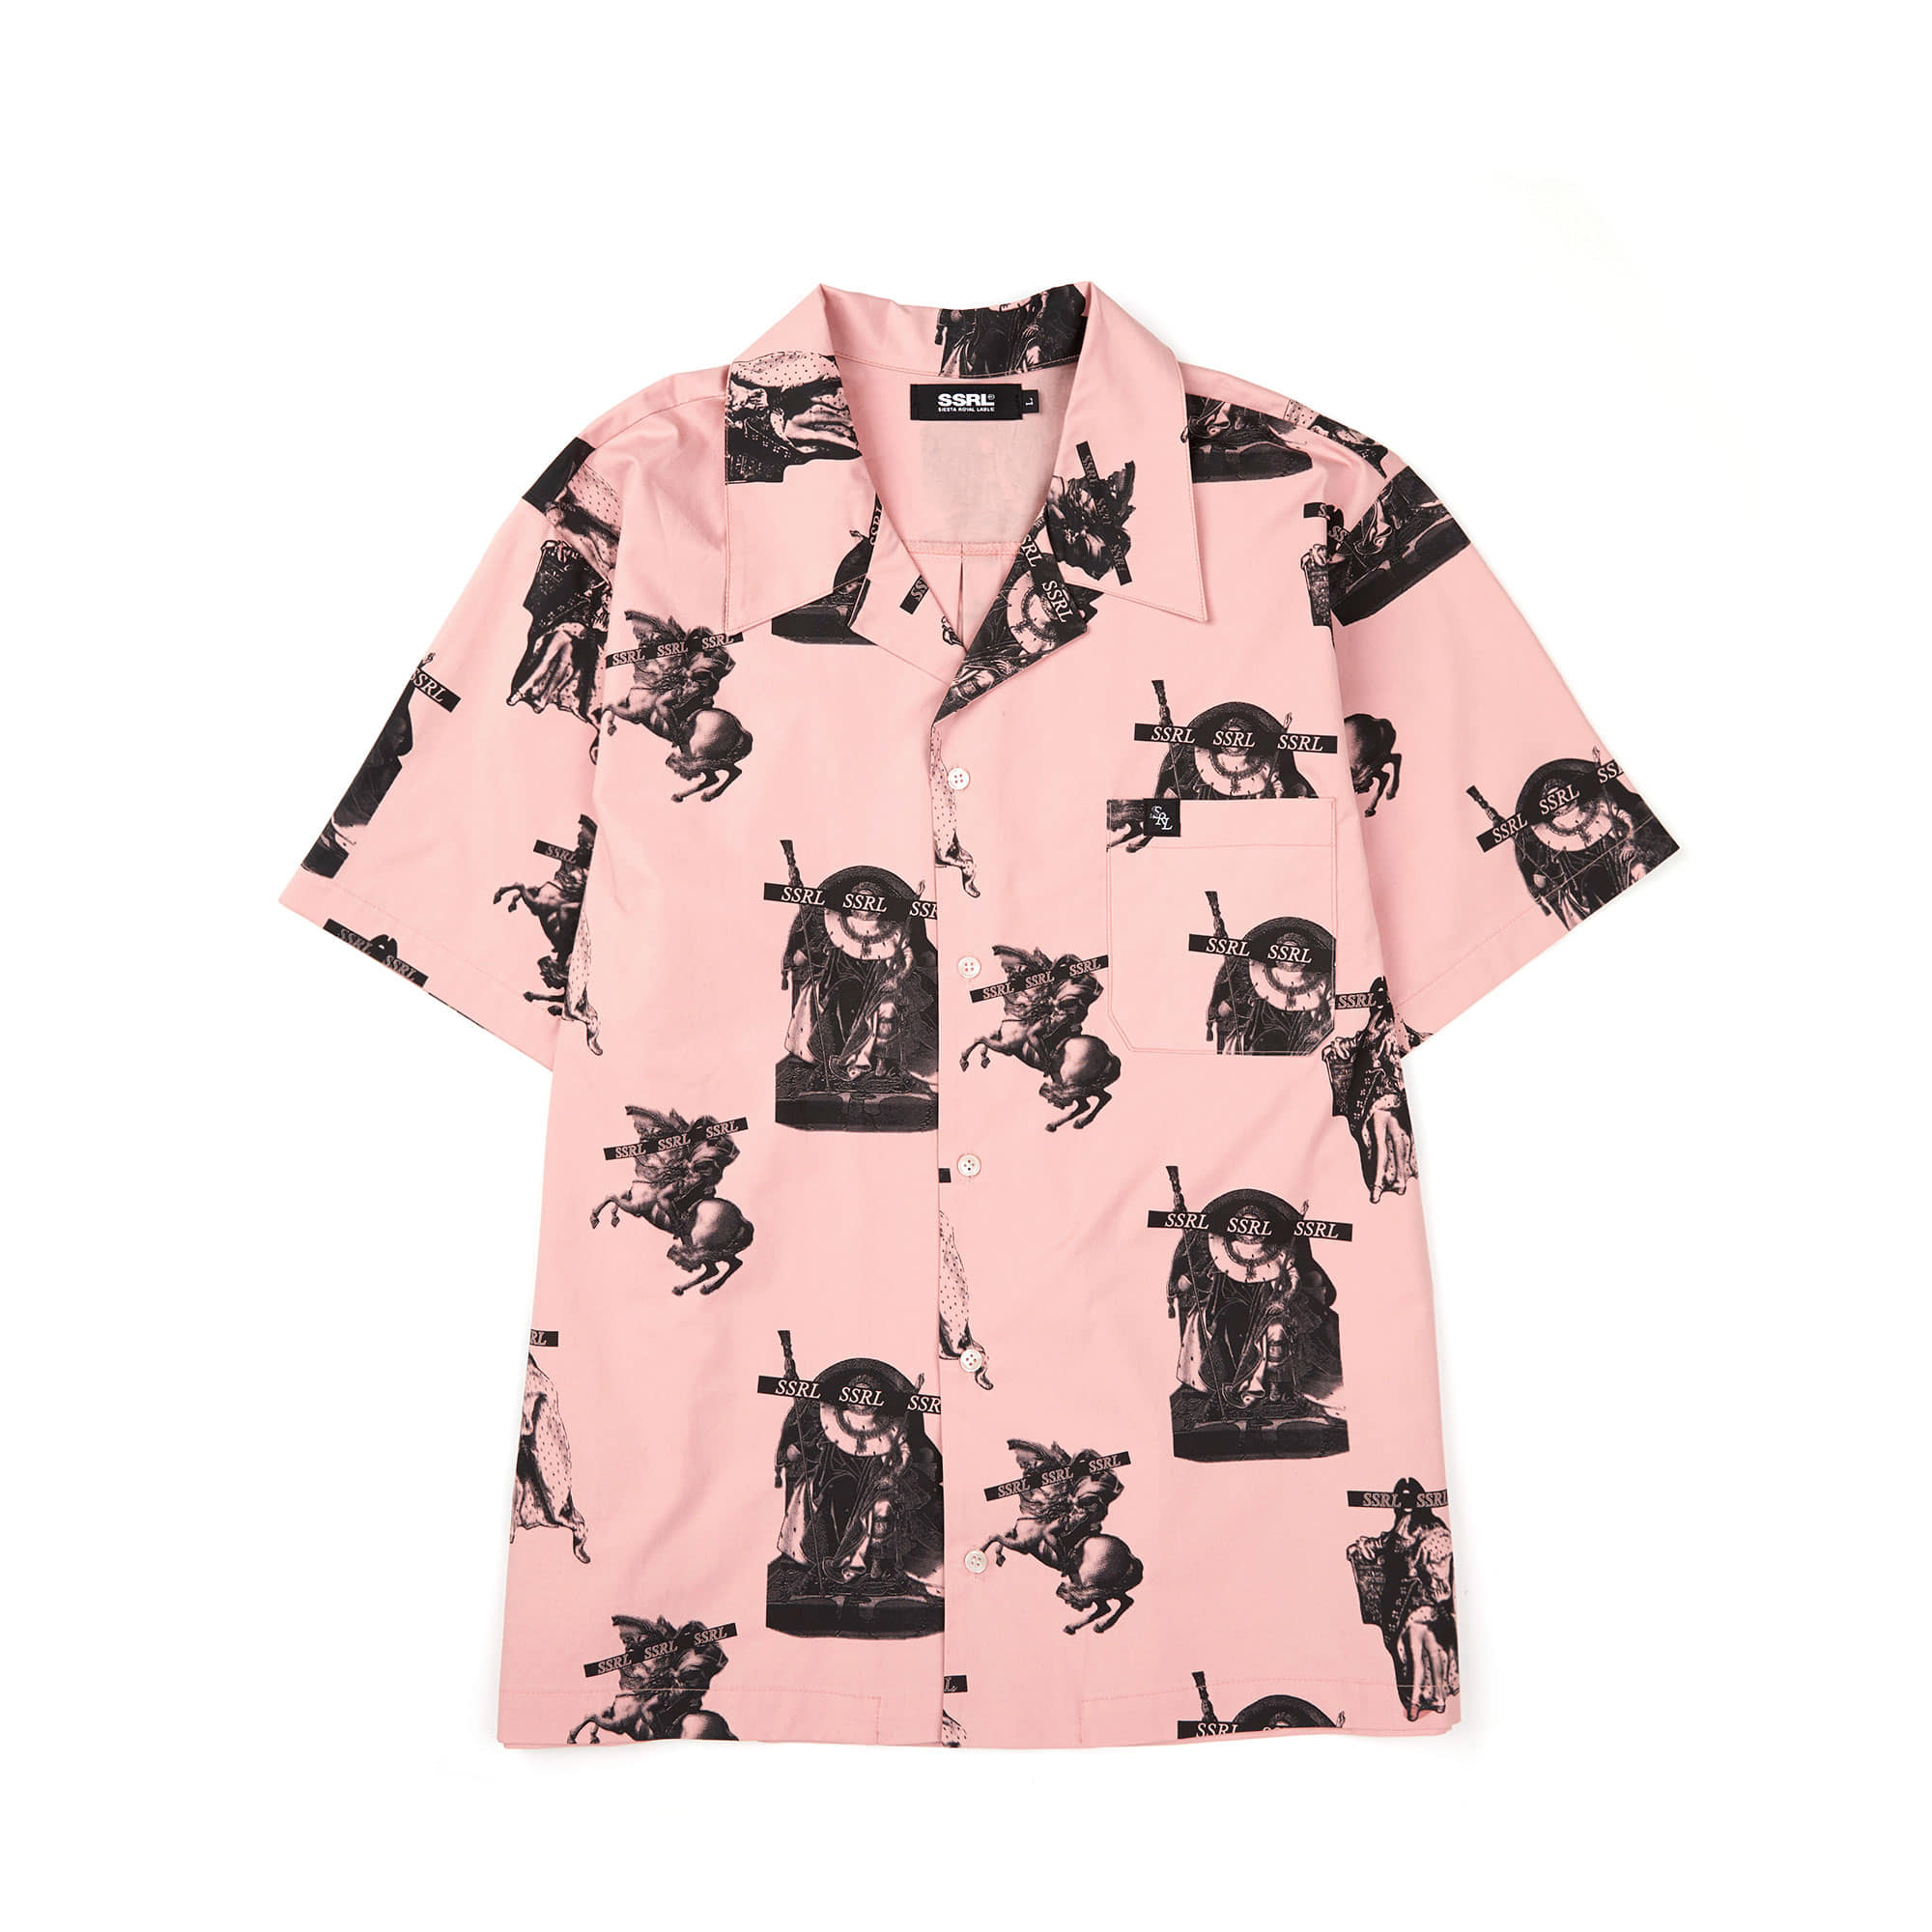 royal hawaiian shirt / pink